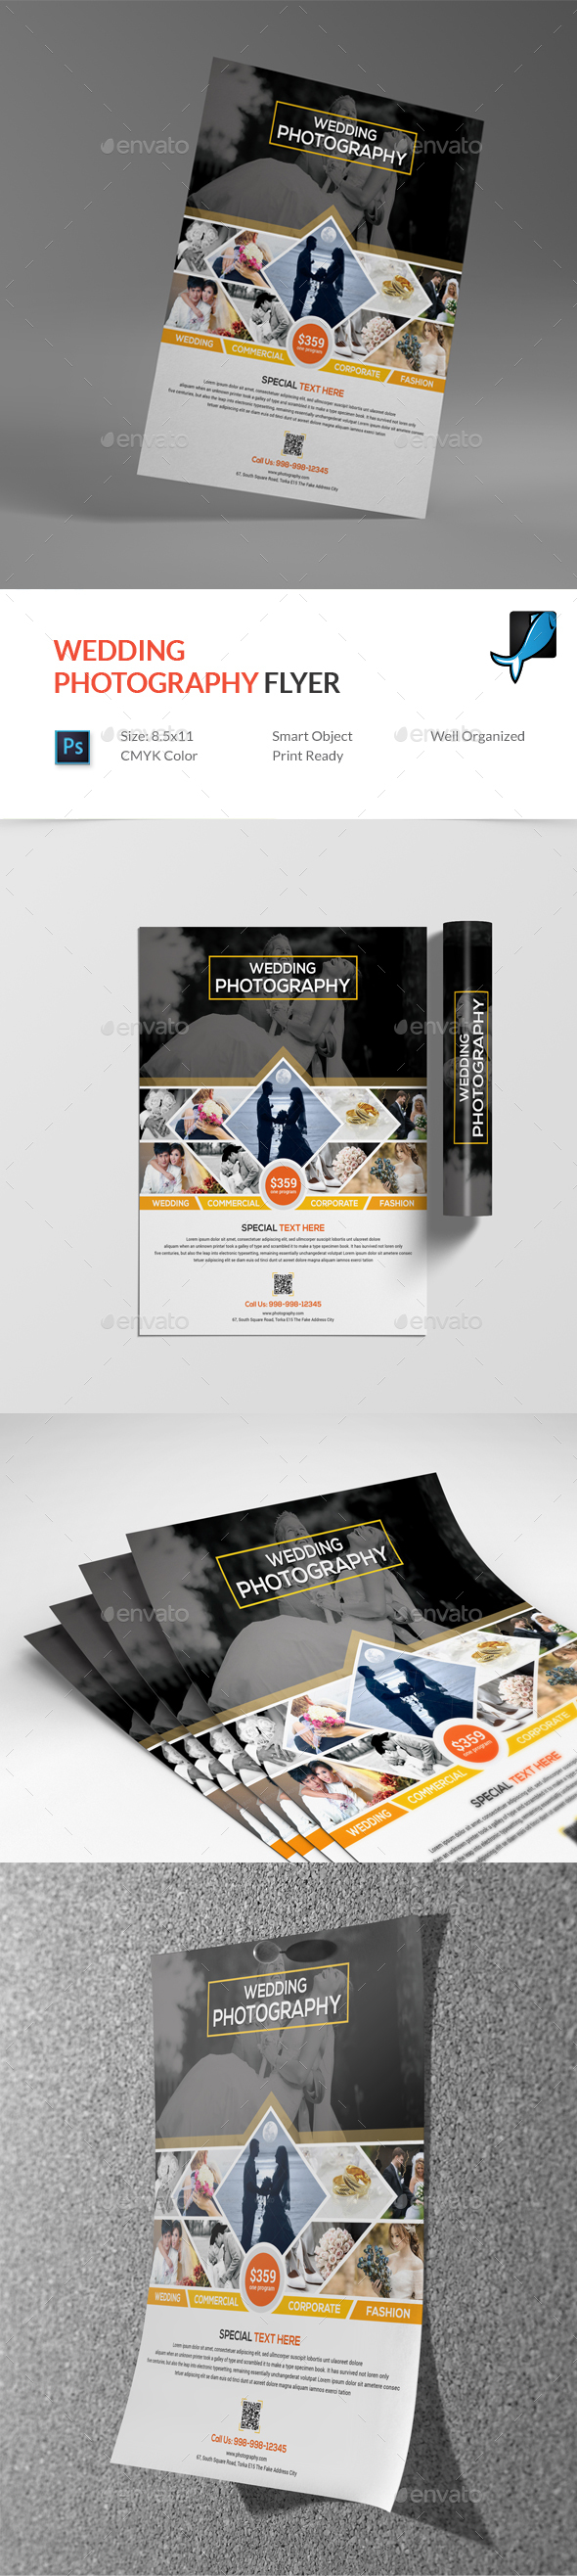 Wedding Photography Flyer - Corporate Flyers